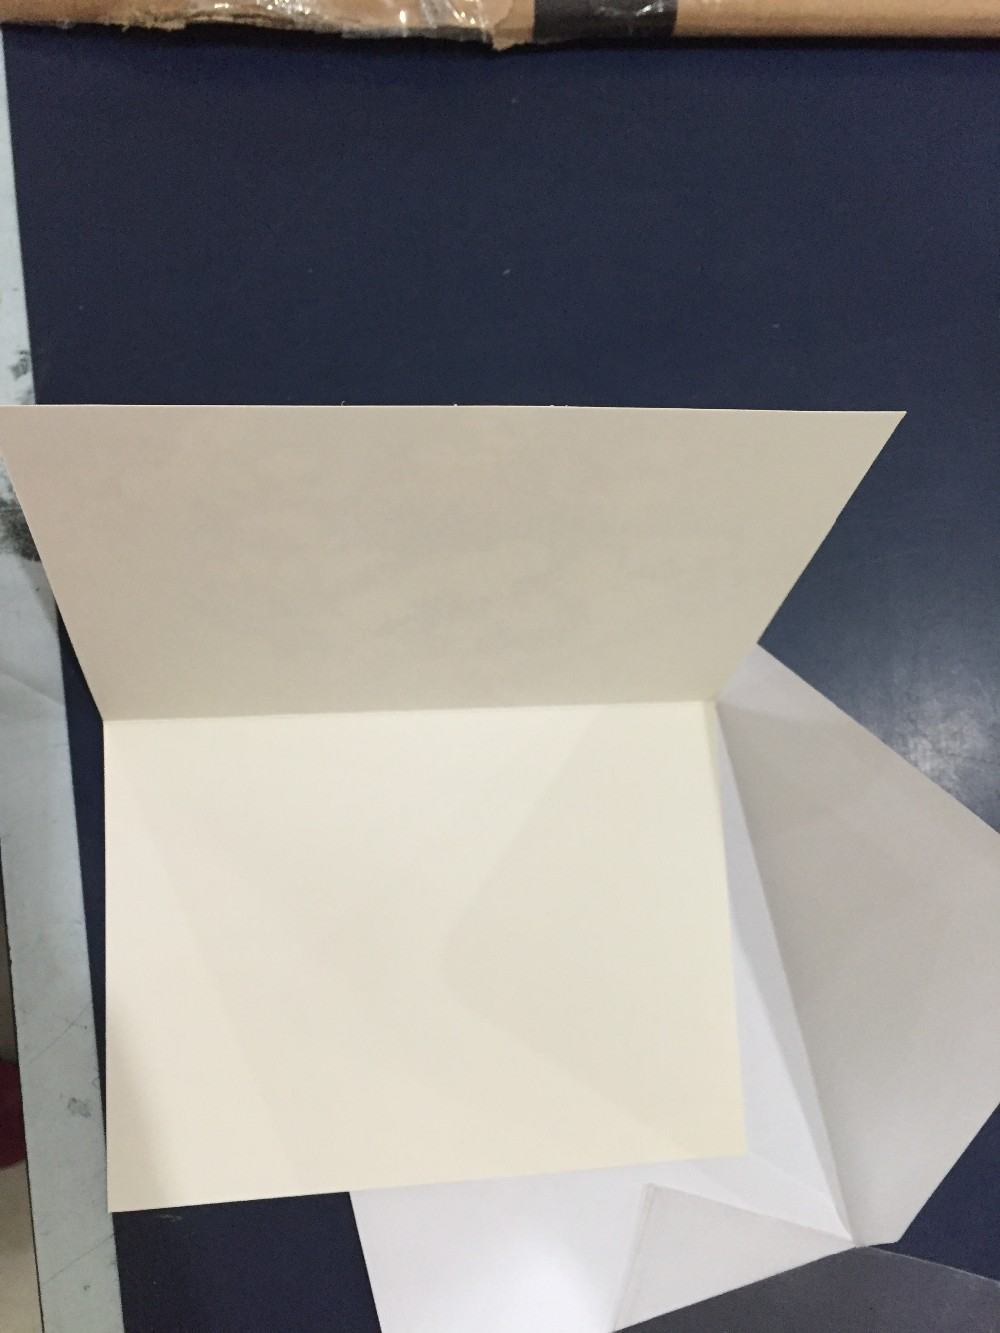 Greeting cards with white card white envelope, packaged with opp bags